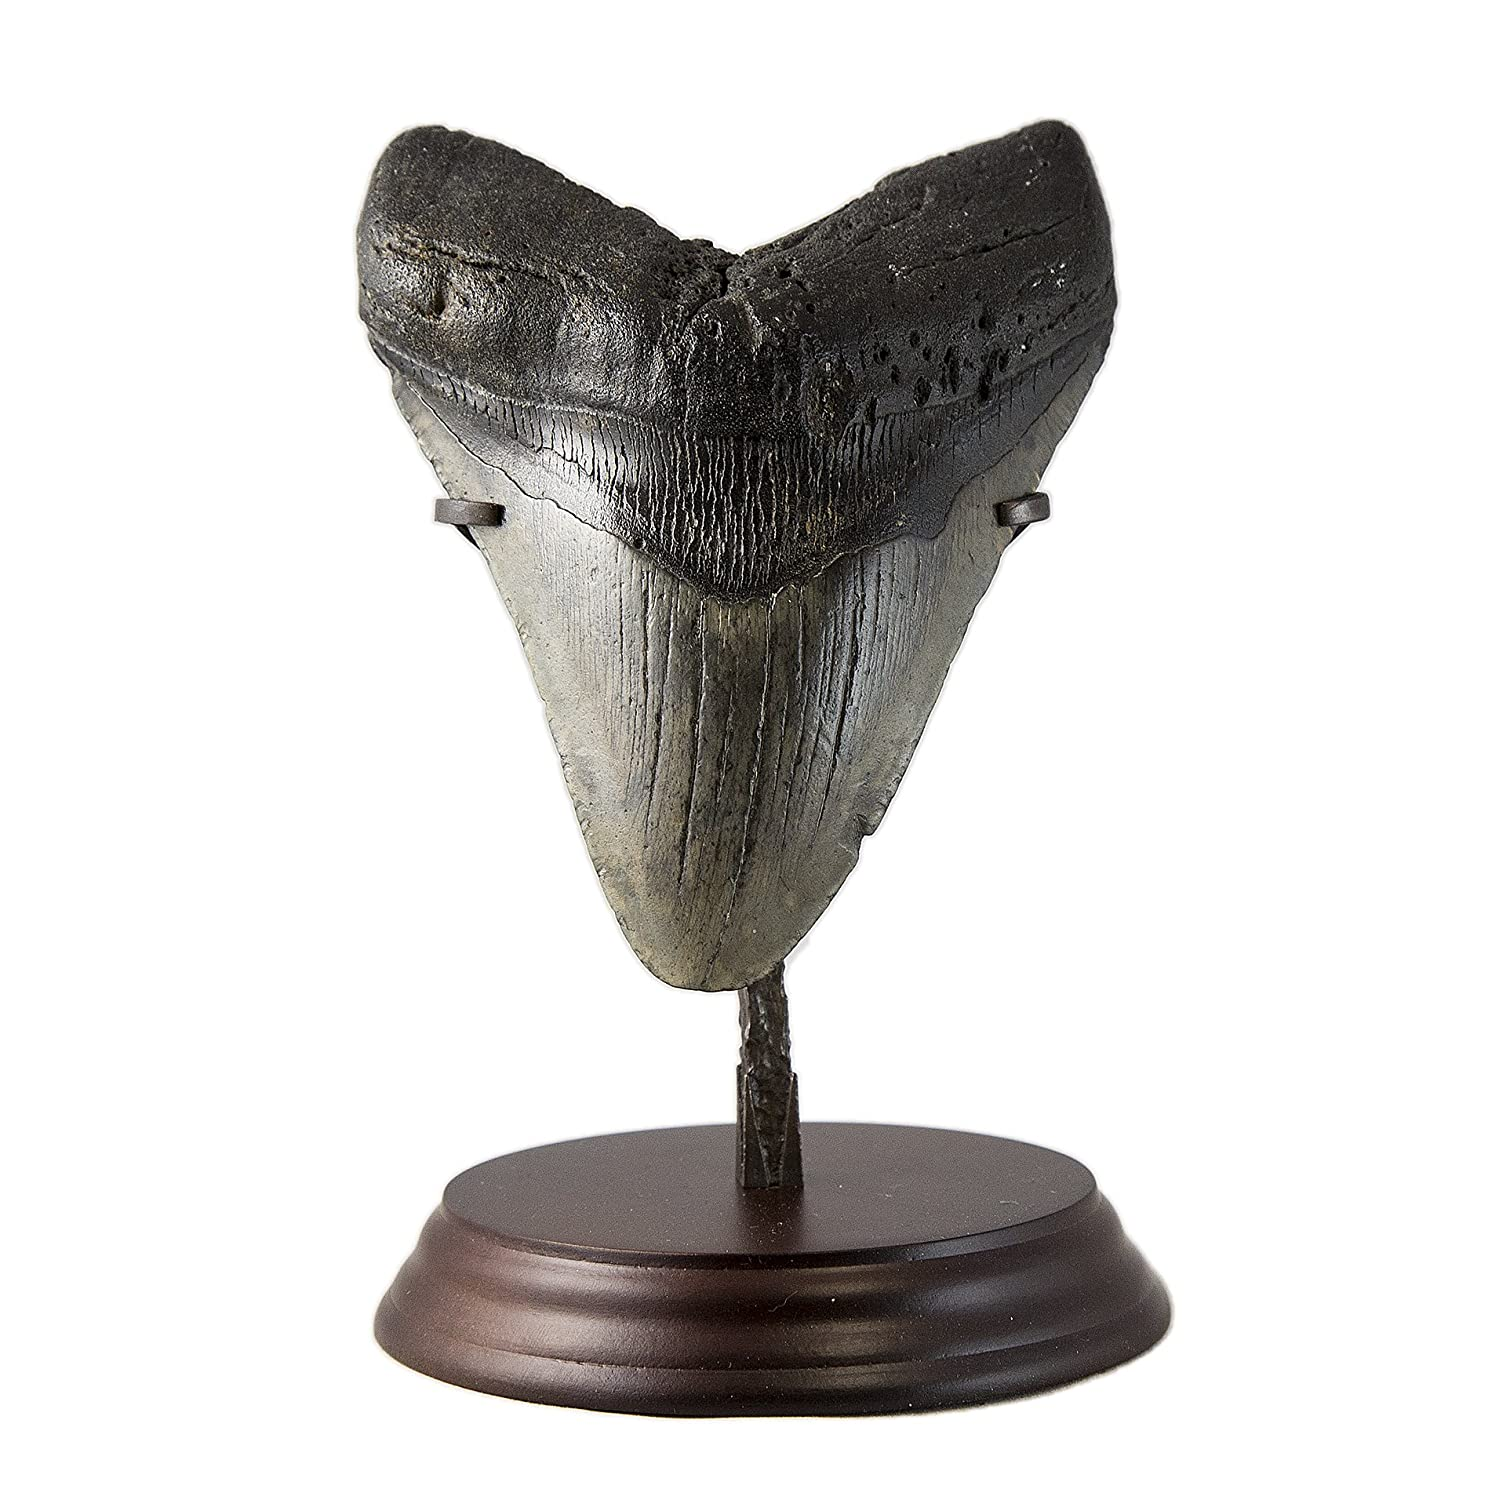 Beverly Oaks Huge Museum Quality Real Megalodon Tooth Fossil - Giant Shark Tooth - MT05 (6 1/16th inch)